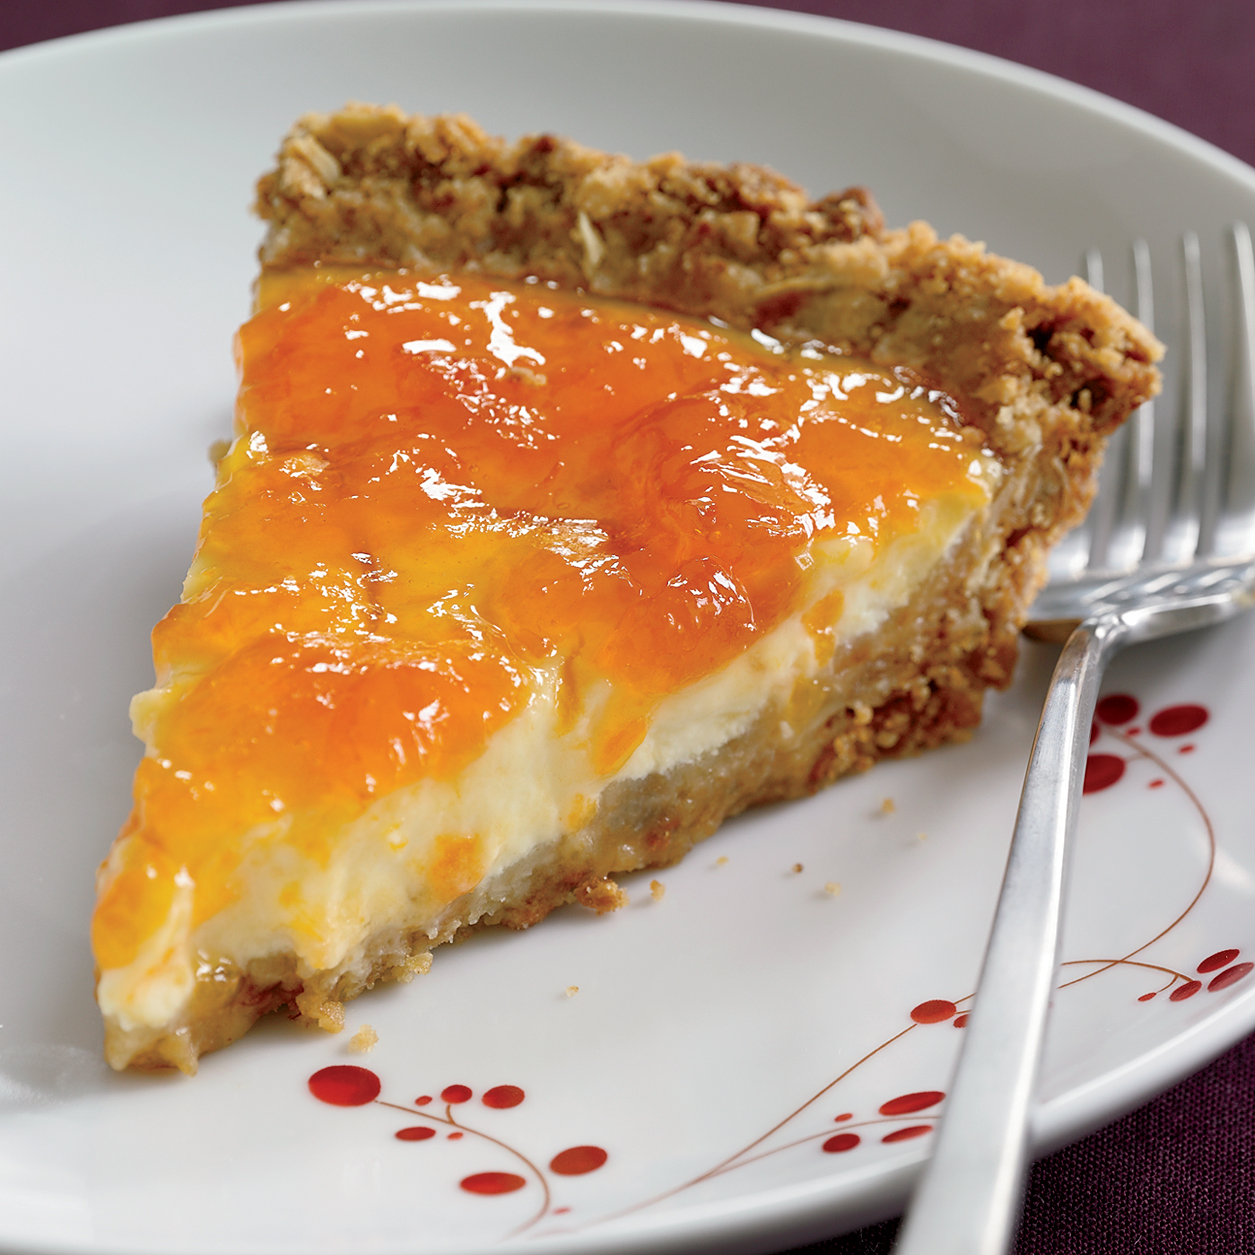 200811-r-yogurt-apricot-pie.jpg